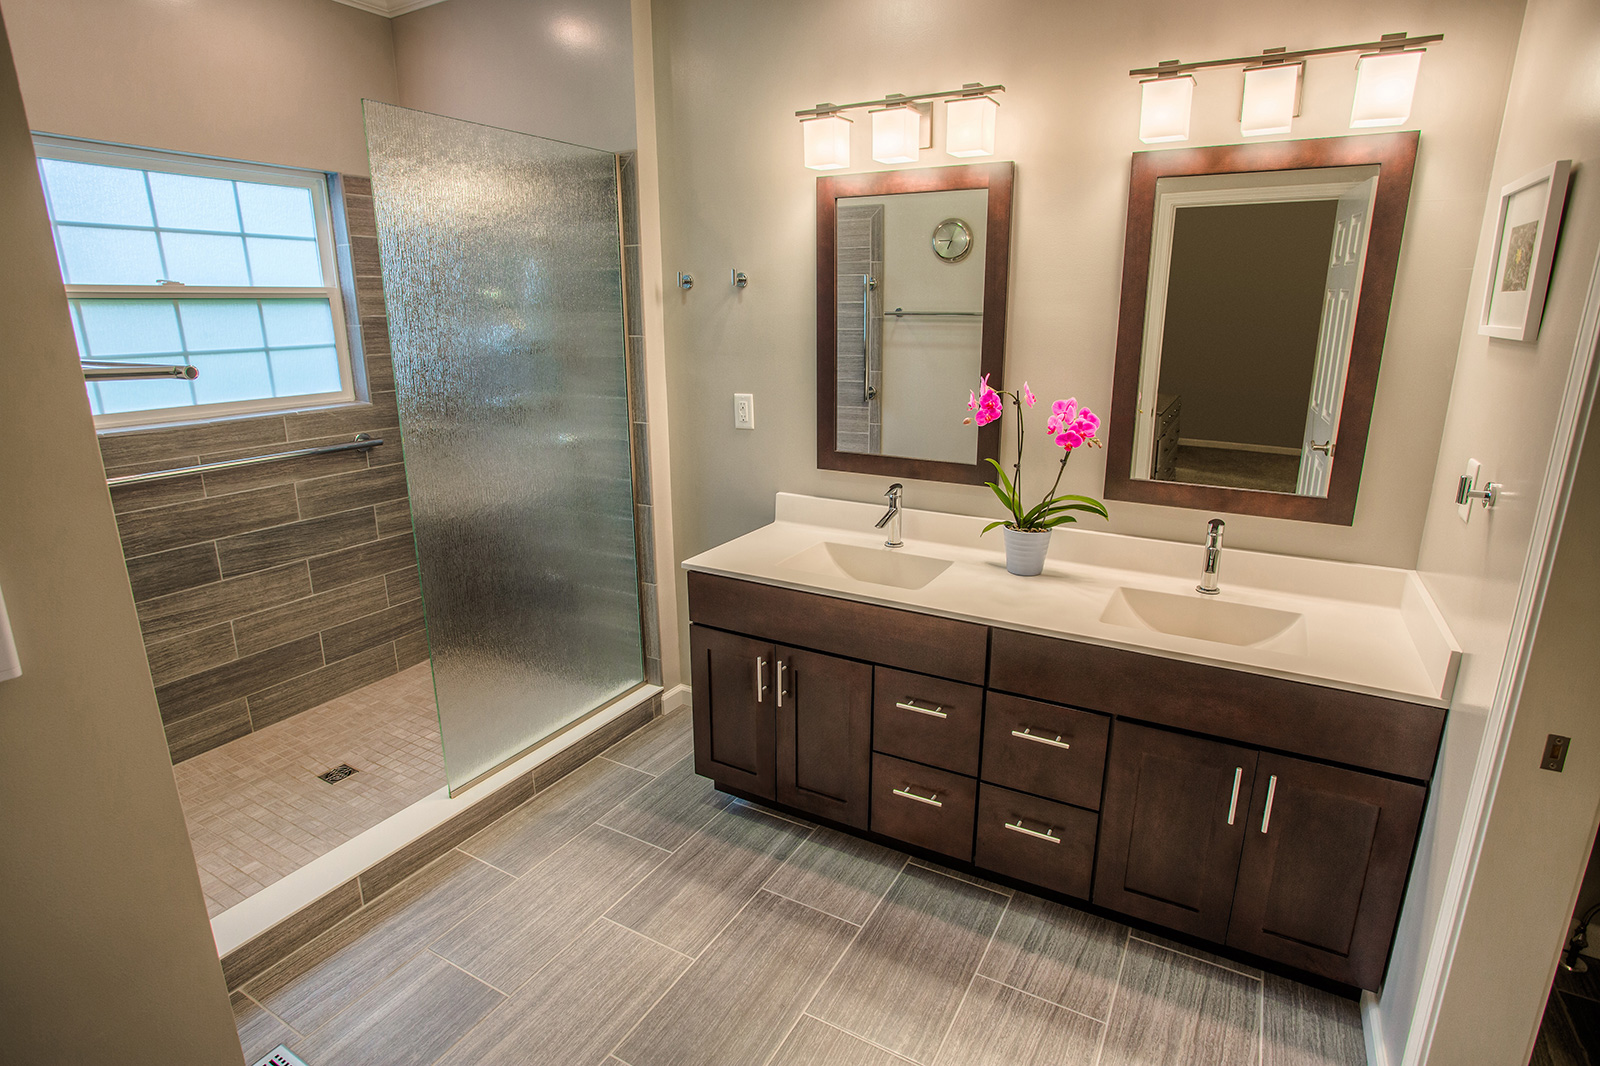 West Lafayette Contemporary Master Bathroom Remodel Riverside - Bathroom remodel schedule